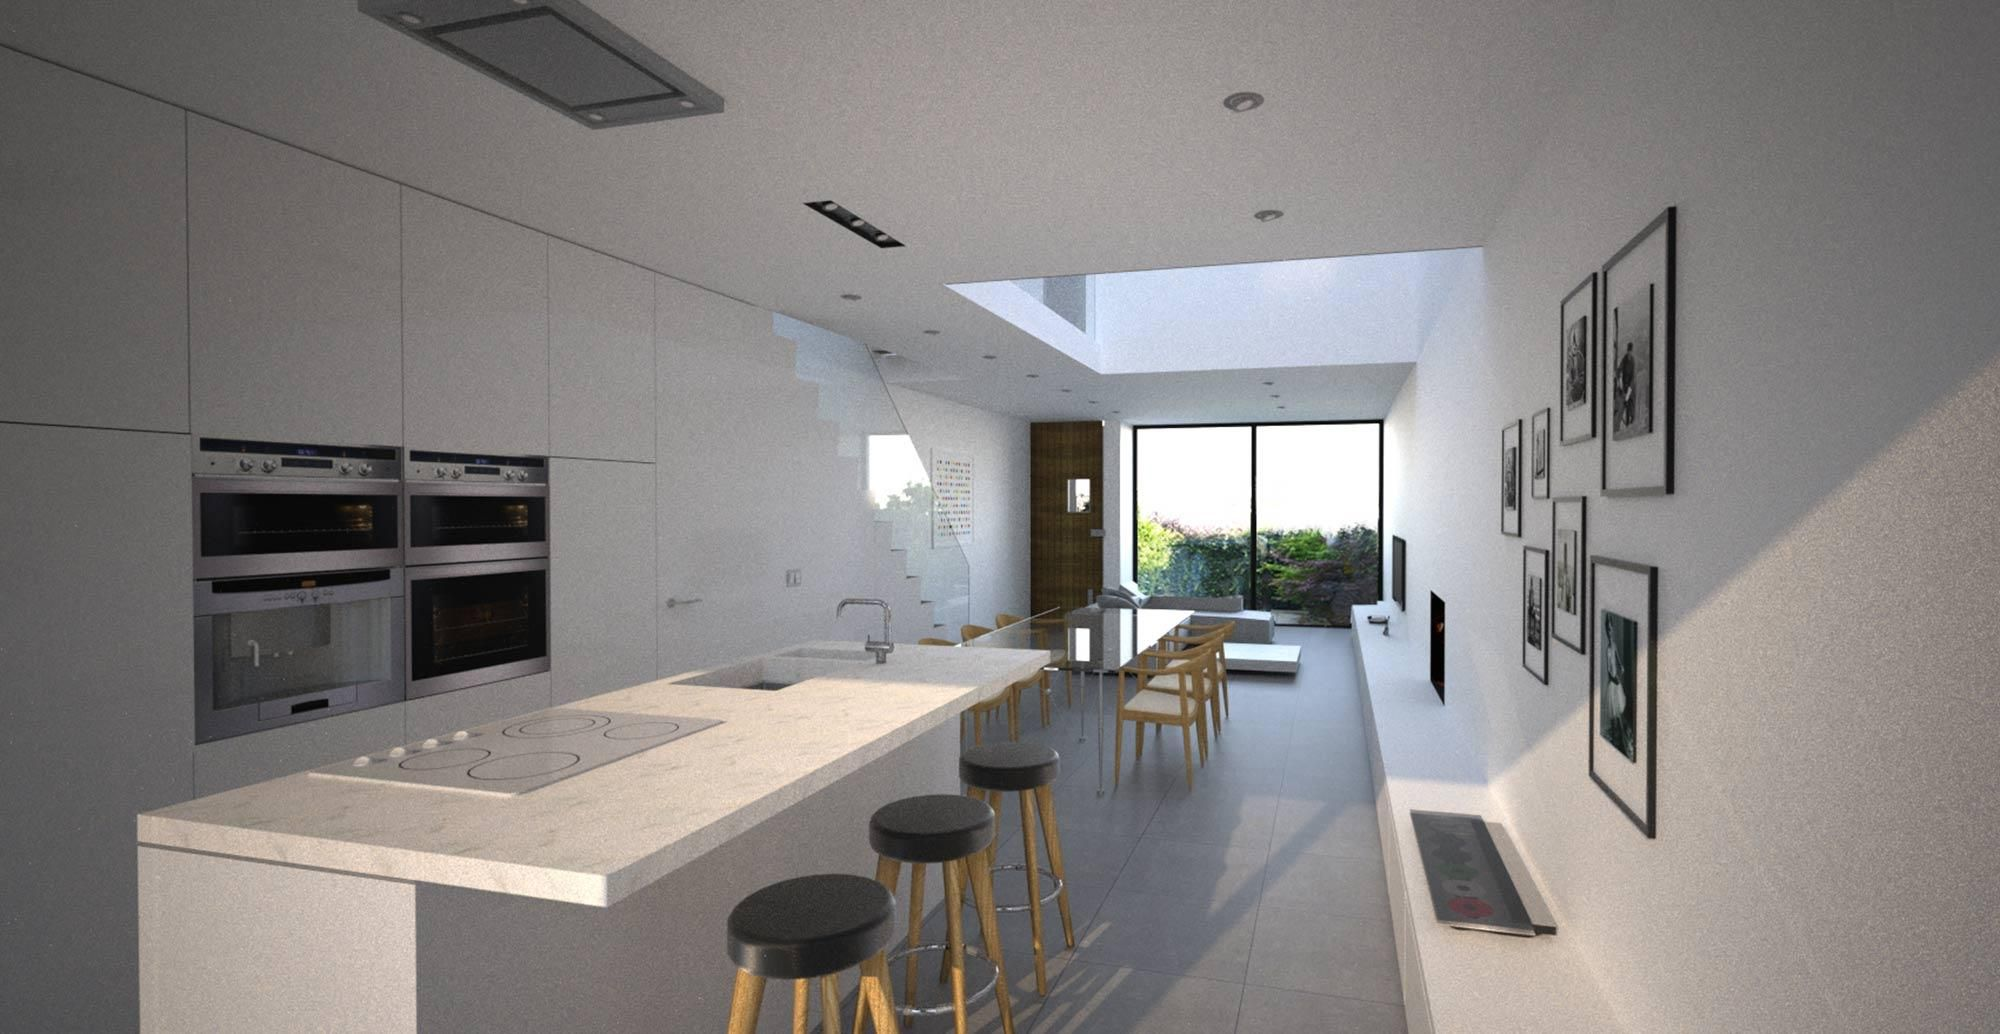 Commercial Residential In Manchester Uk Designed By Andrew Wallace